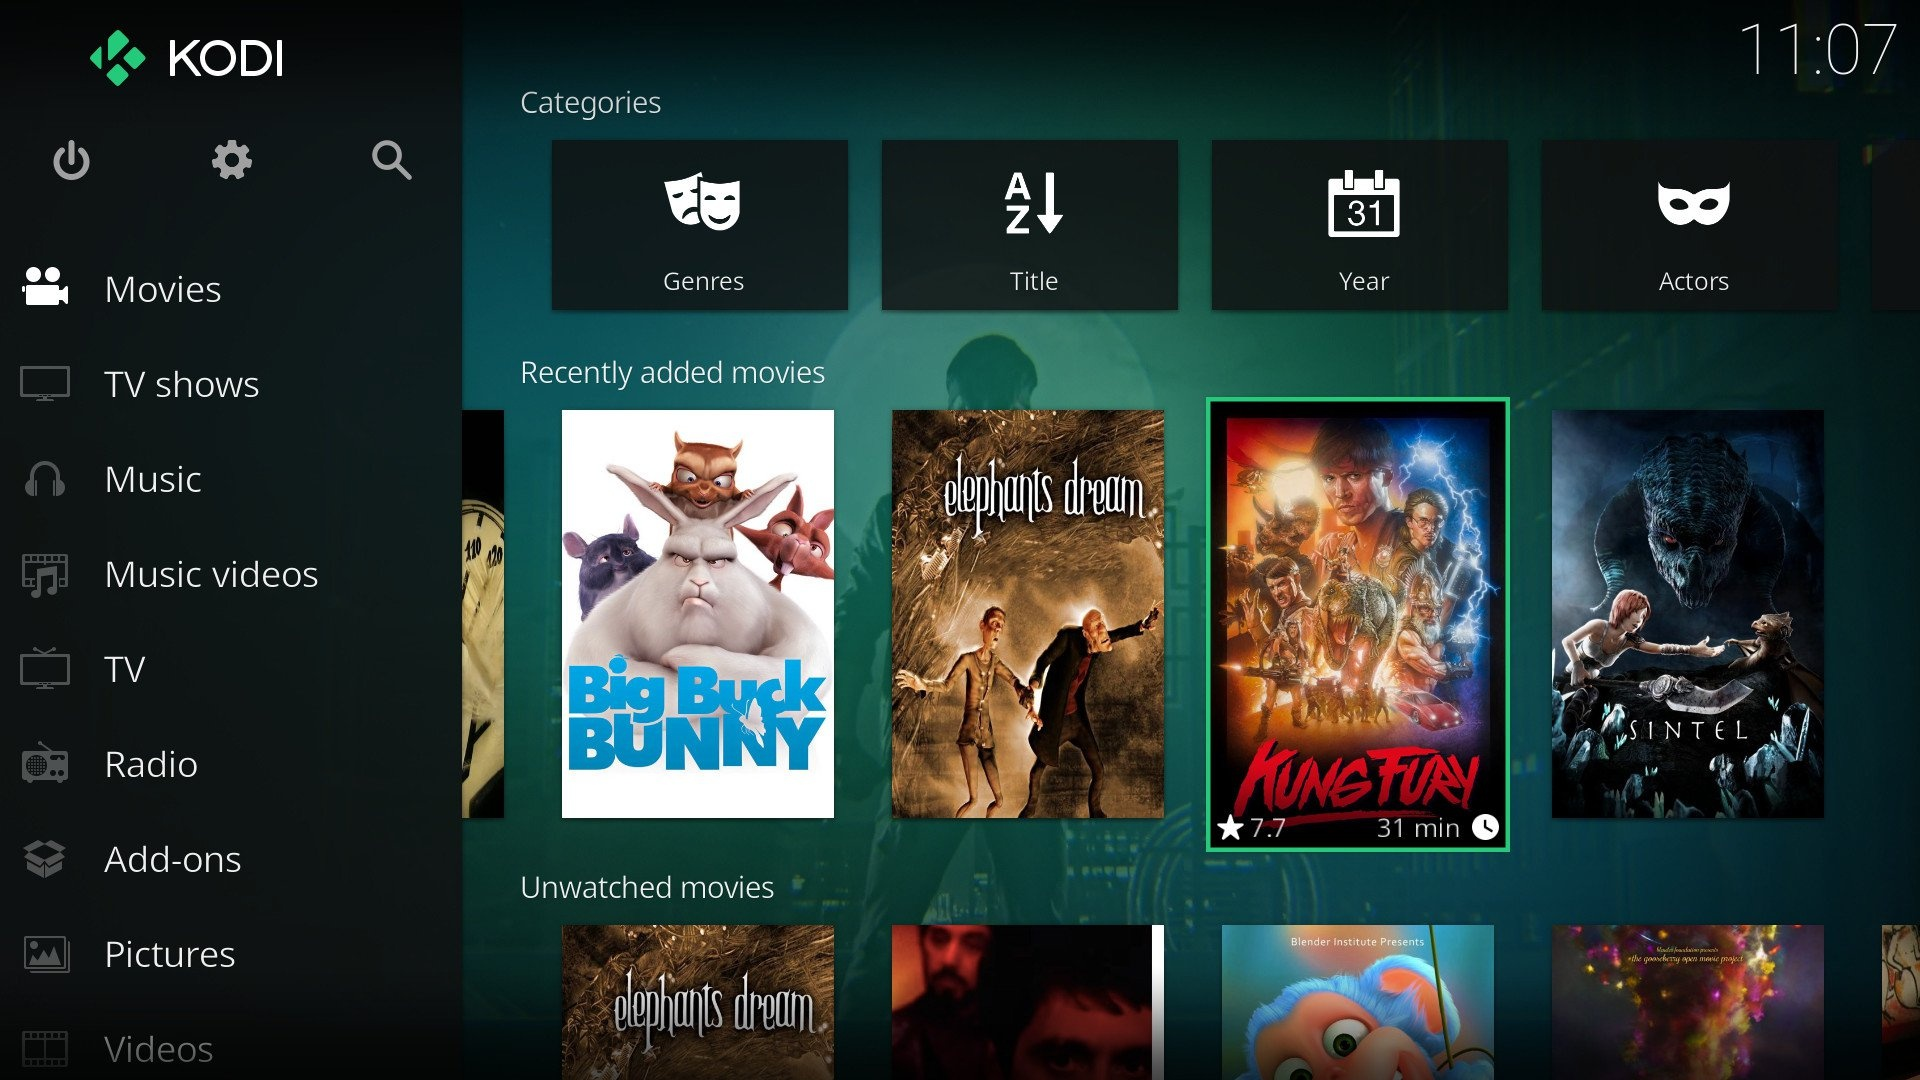 kodi 17.6 download windows 10 64 bit